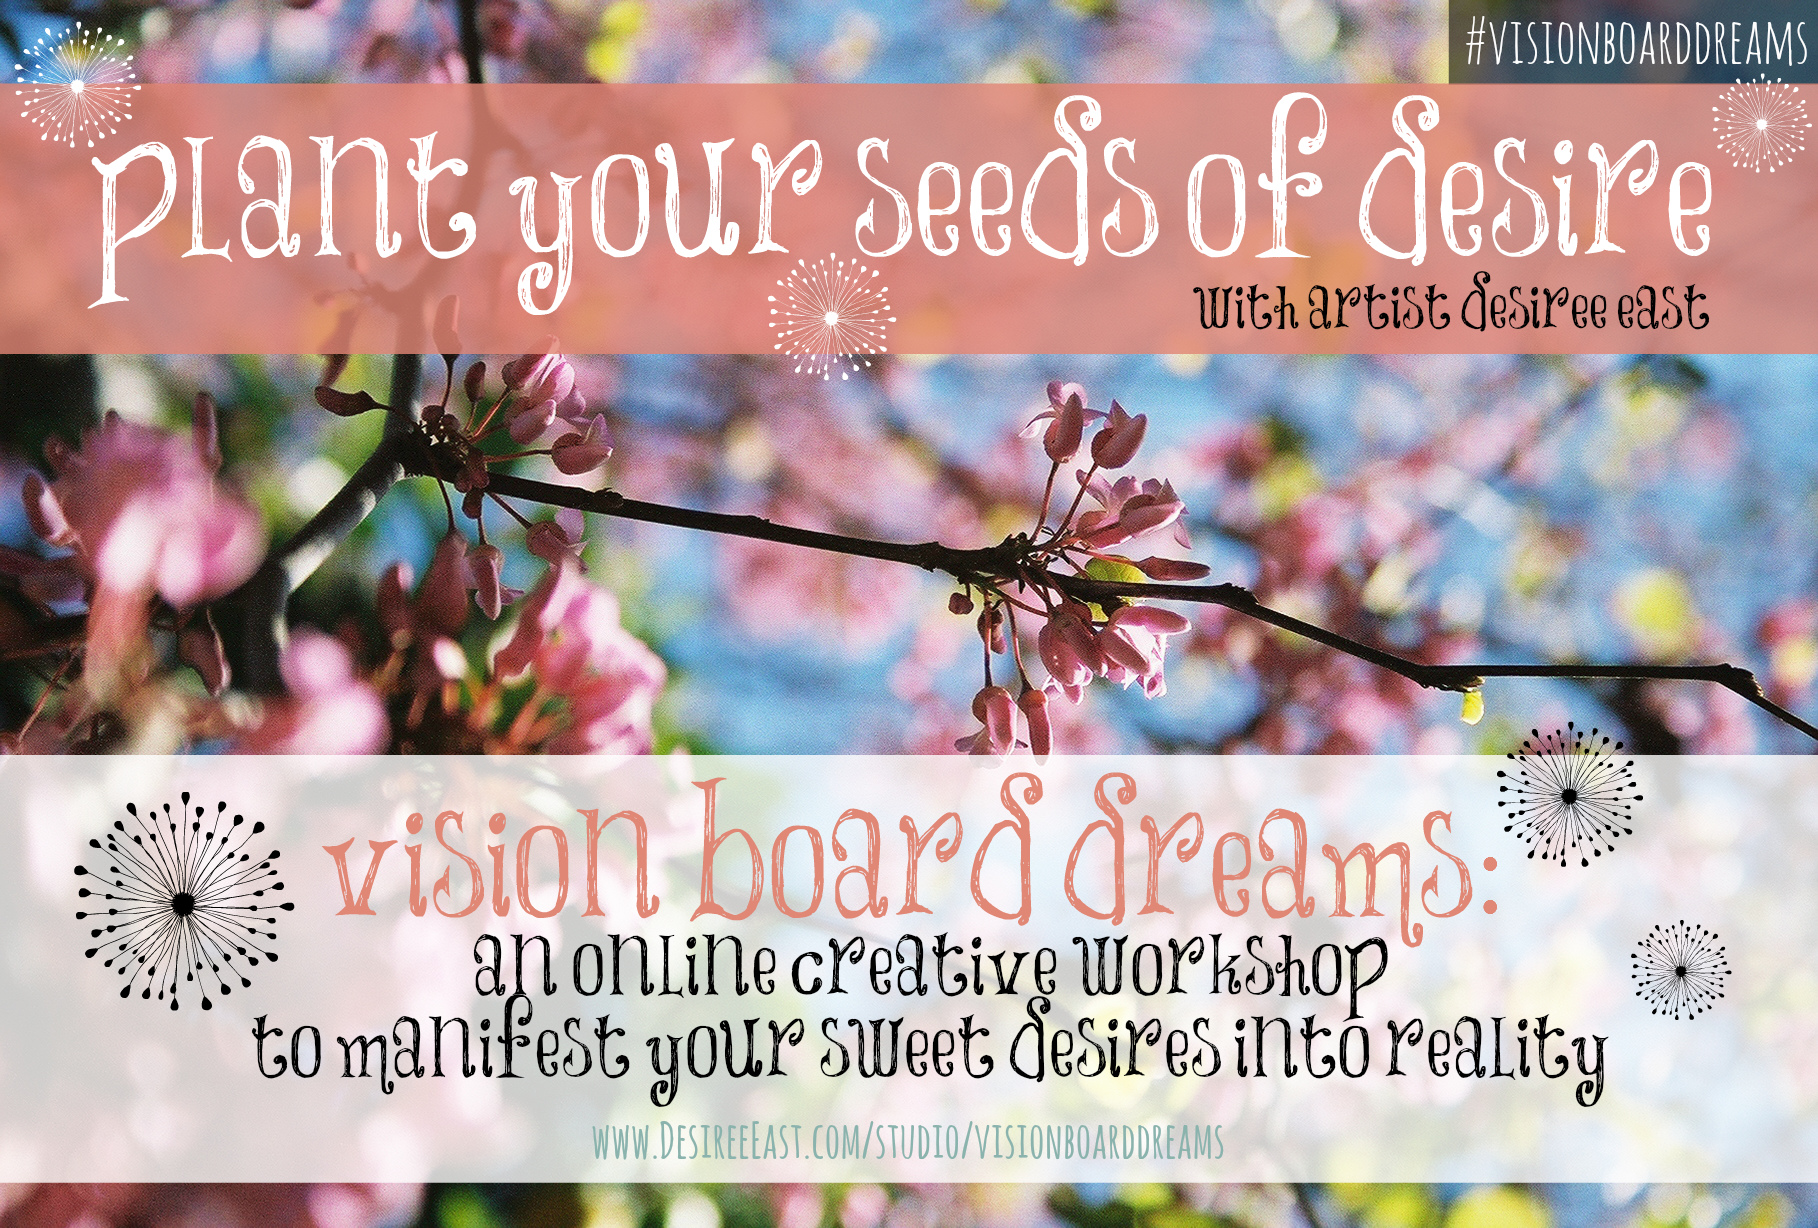 how to create a vision board with artist desiree east